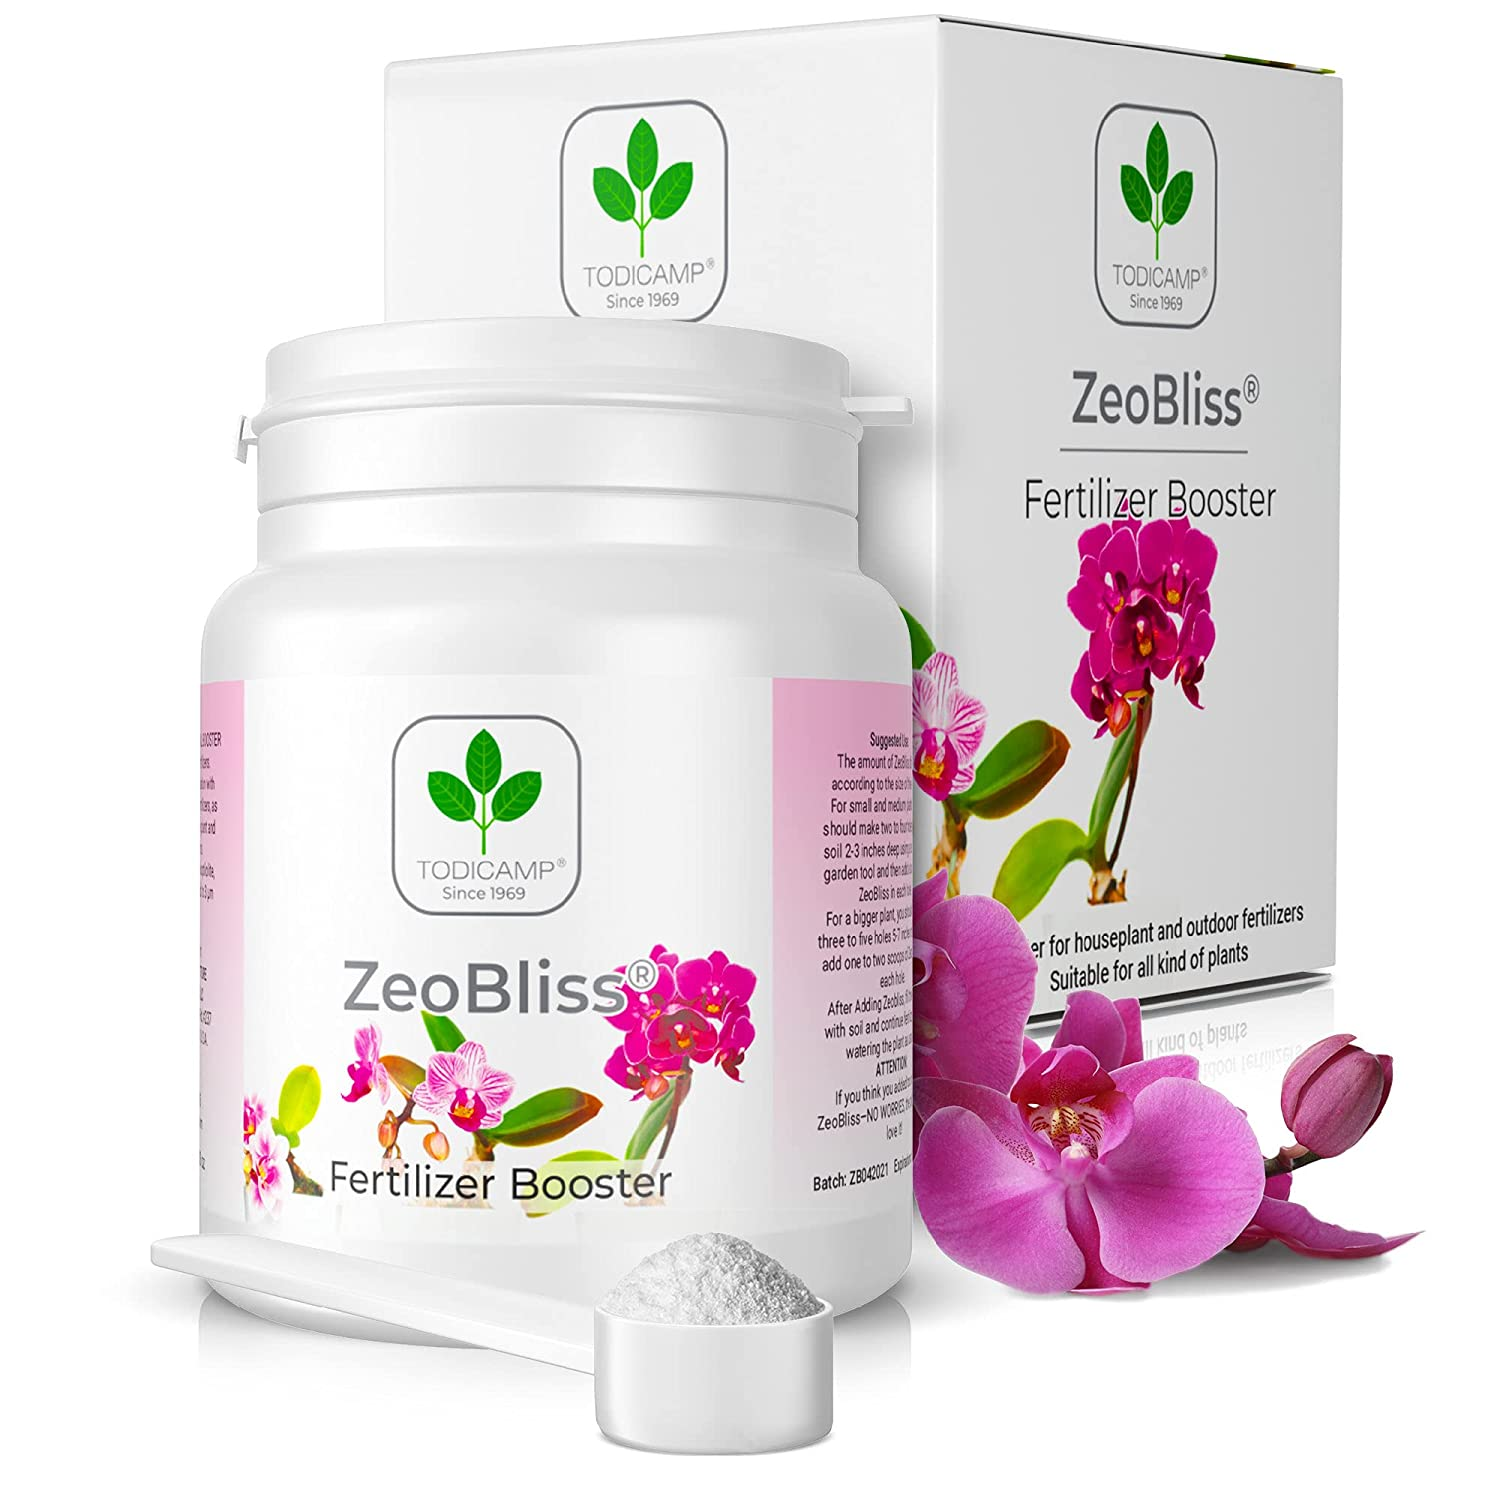 Plant Food & Fertilizer Booster for Flowers & Plant fertilizers - 2-in-1 - ZeoBliss by TODICAMP - All Valuable Minerals for Your Plants! - All Natural! - Pet Friendly! - (3.5 oz - 125 Doses)